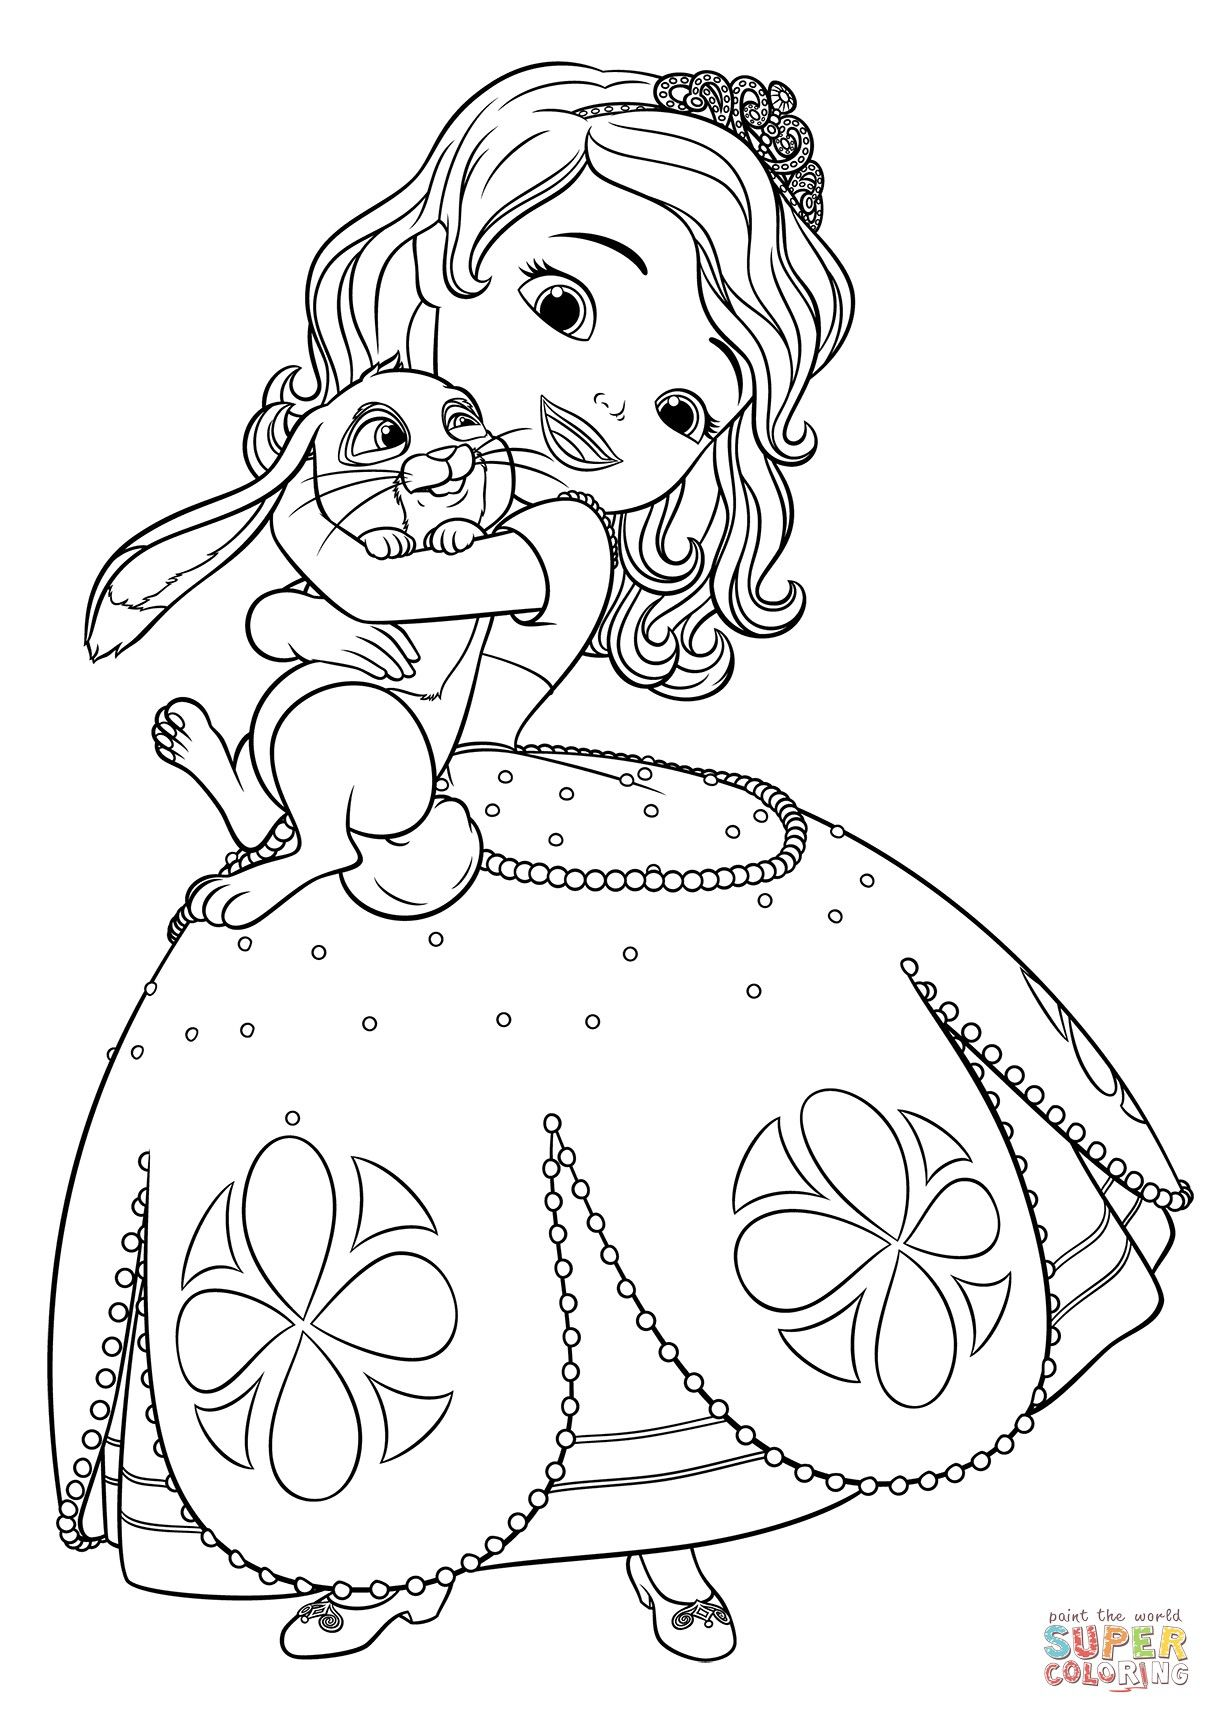 coloring pages of princess sofia princess sofia the first going to dance coloring page netart of sofia pages princess coloring